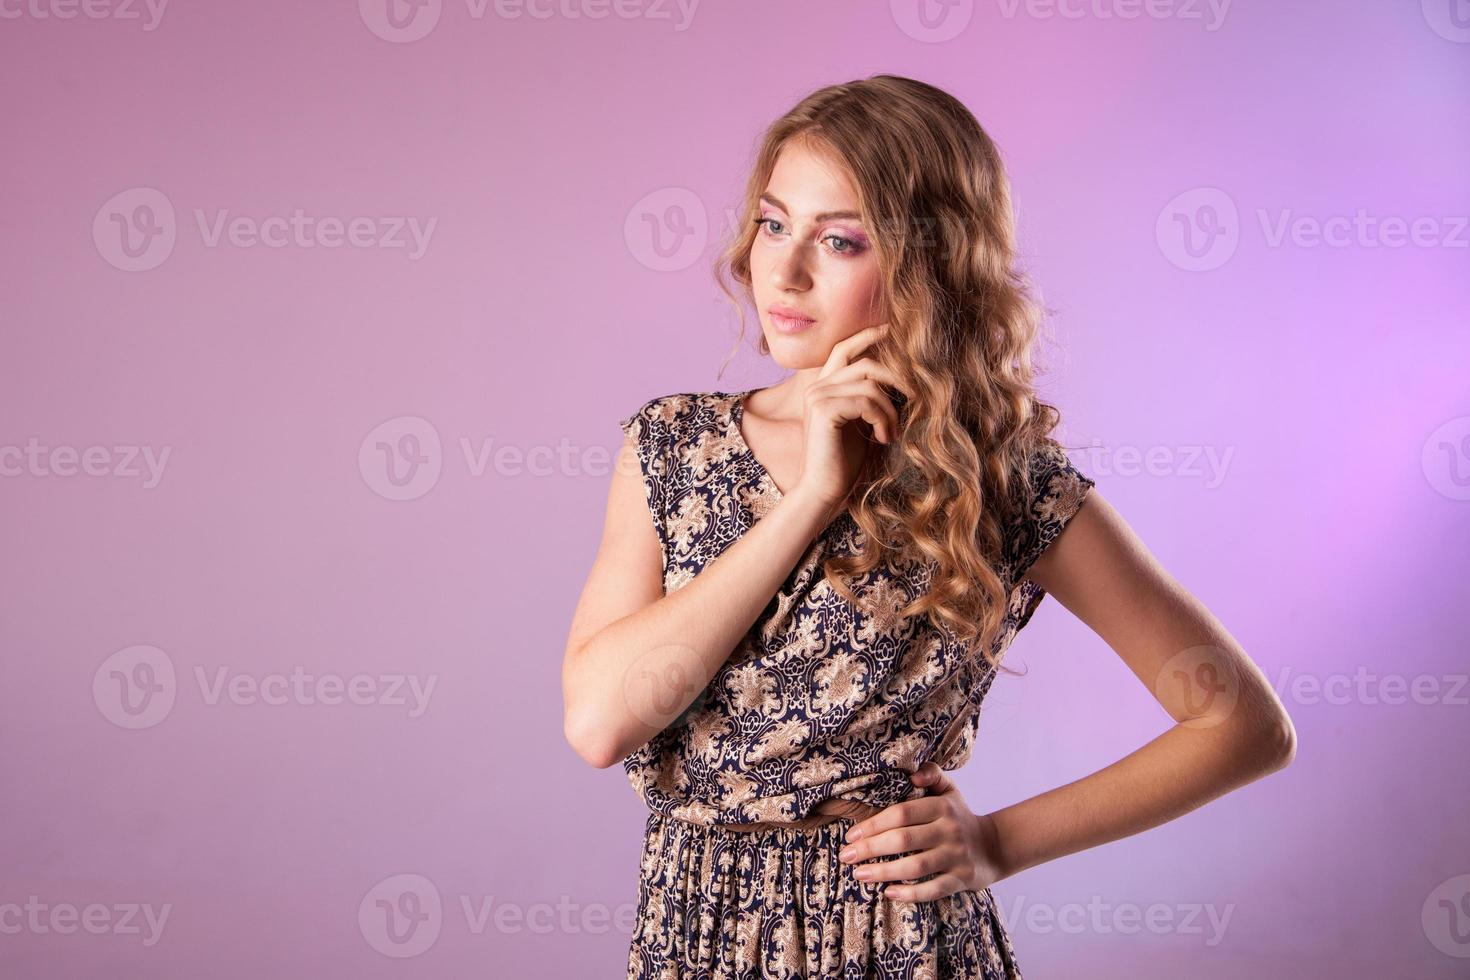 Fashion model with flowers, spring look photo